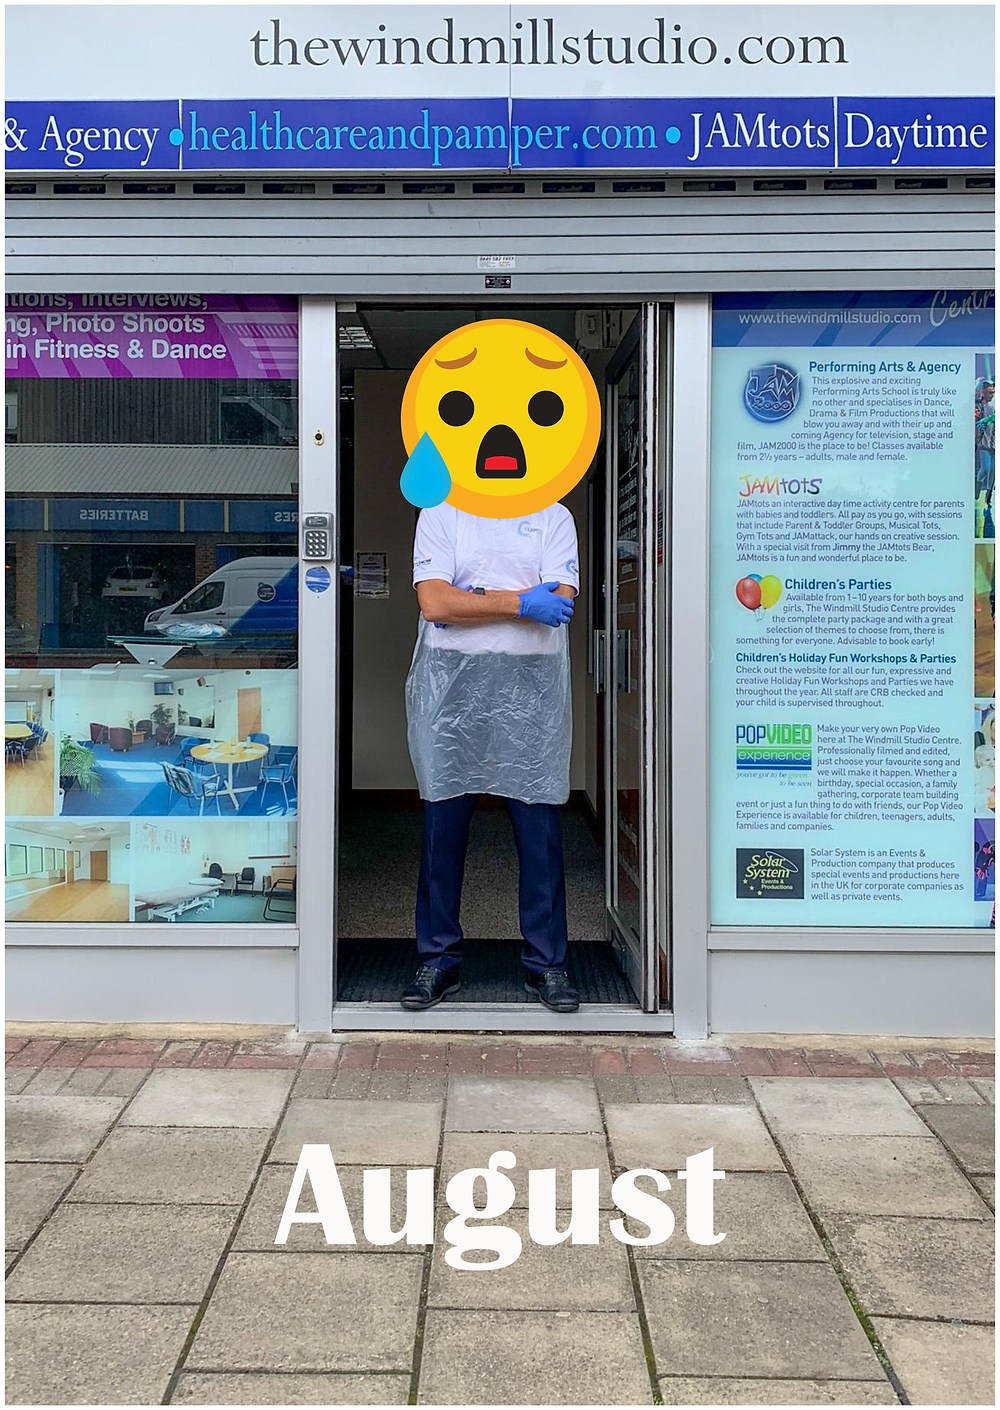 Jason Clemow in full Personal Protective Equipment standing in the glazed doorway of Clemow Therapies Ruislip Manor Clinic with a big sad emoji face on top of his shoulders. There is a headline of 'August' pinned to the pavement outside the clinic.